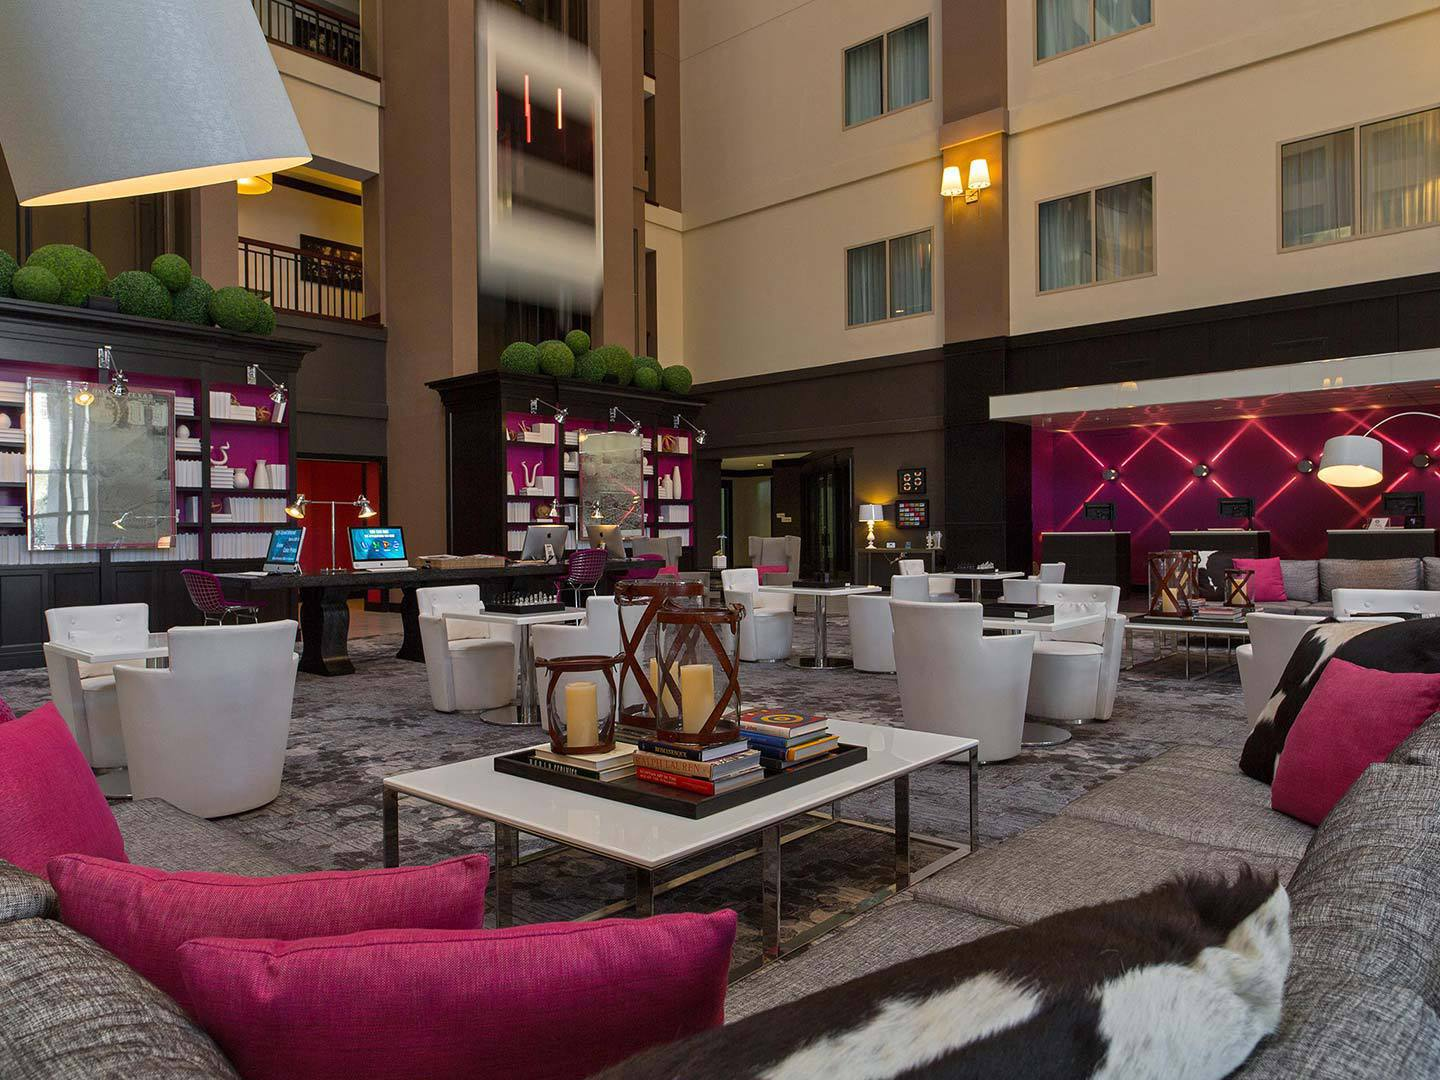 Le-meridien-Starwood-hotel-by-the-galleria-dallas-texas